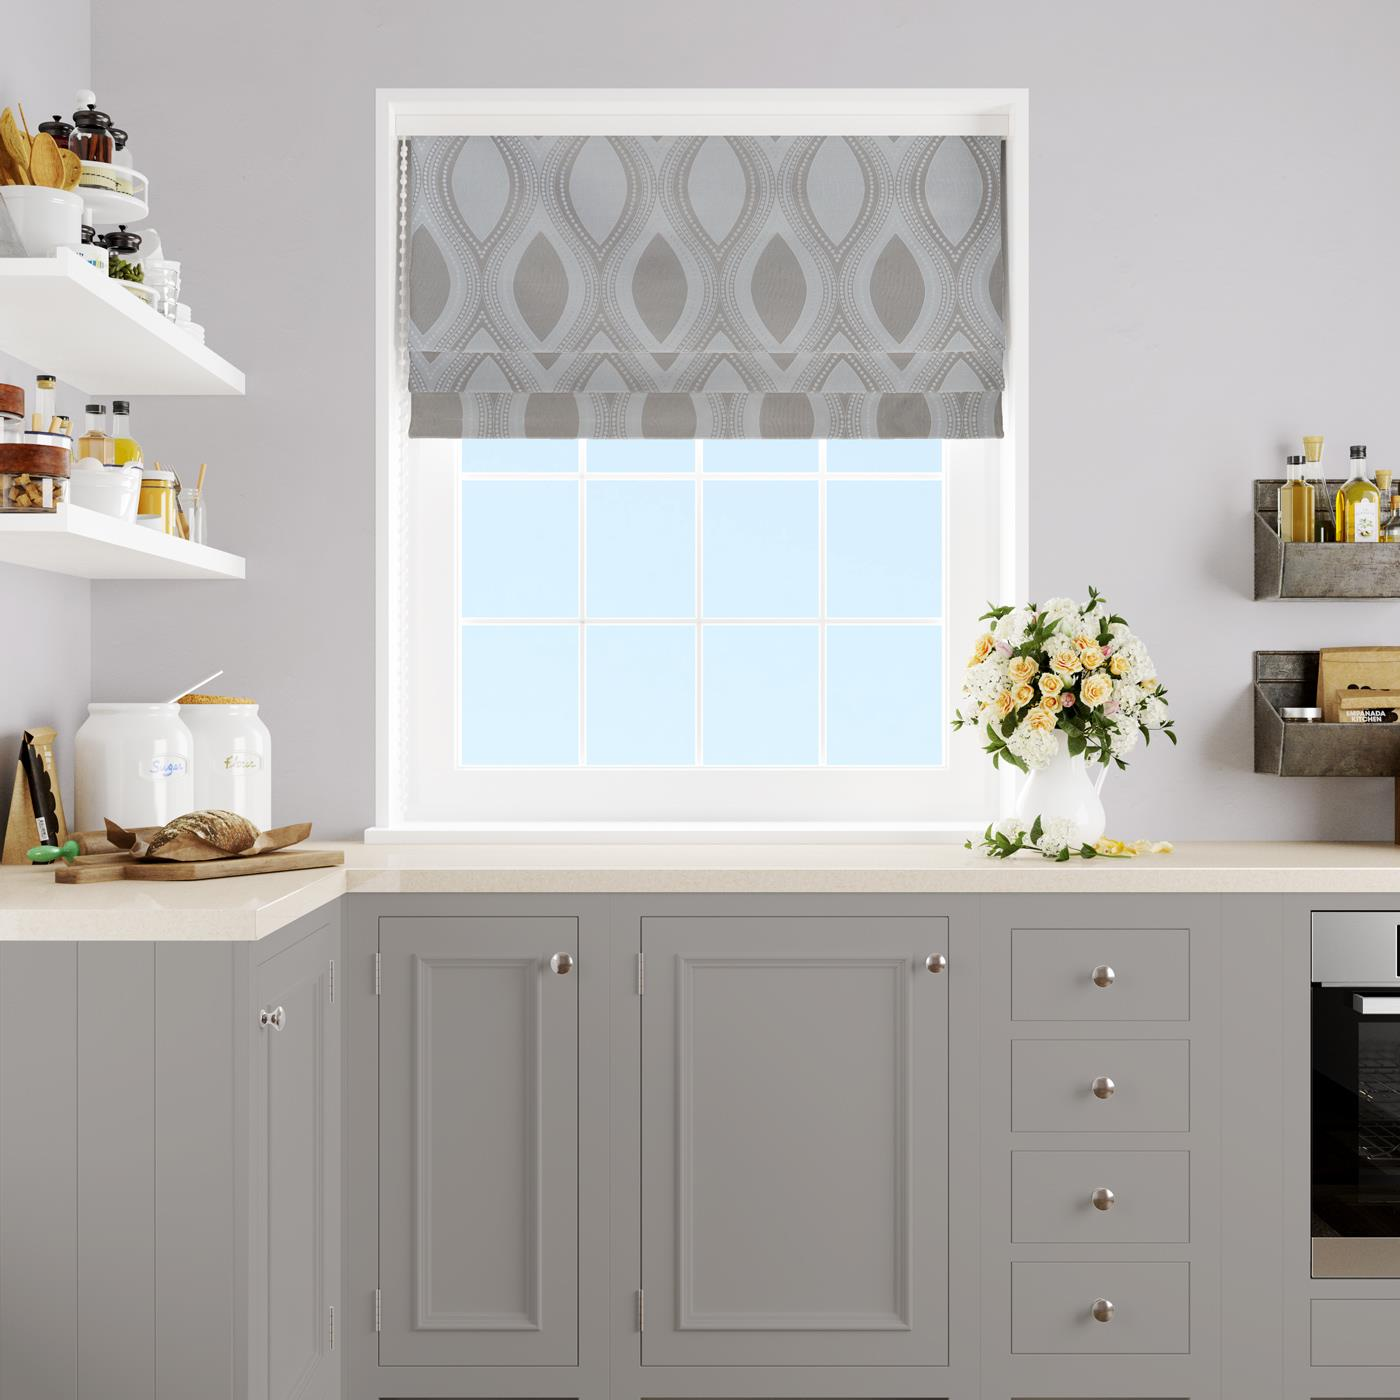 Quixley Natural Made To Measure Roman Blind -  - Ideal Textiles